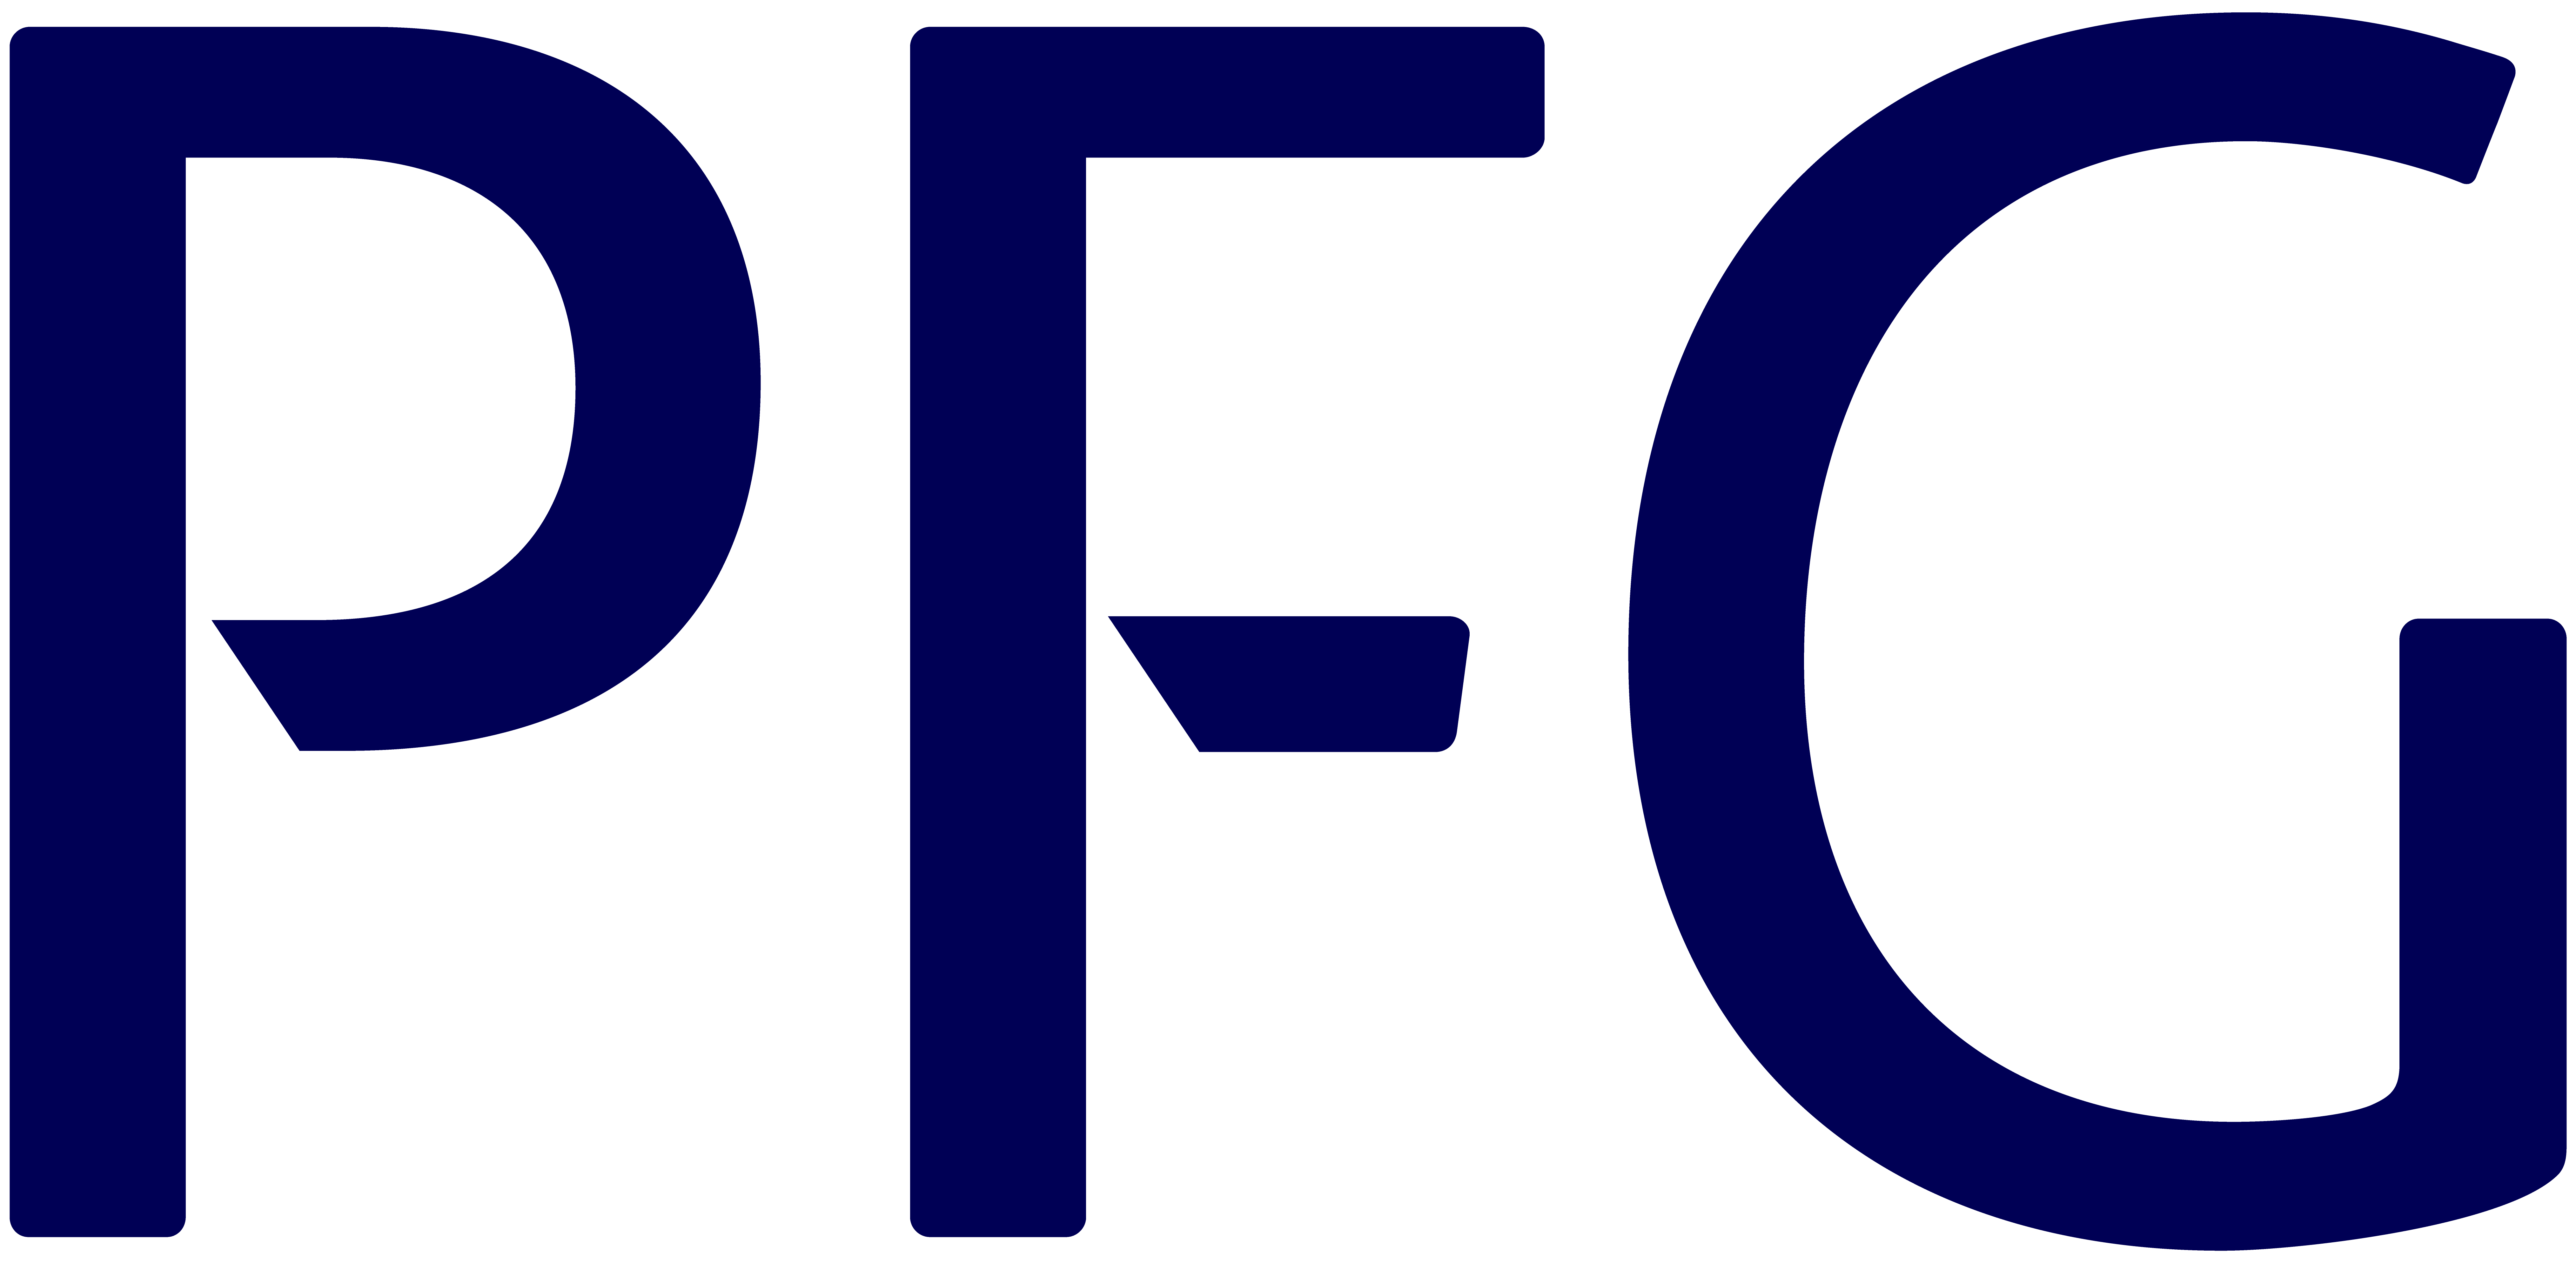 Provident logo - 'PFG' in blue text